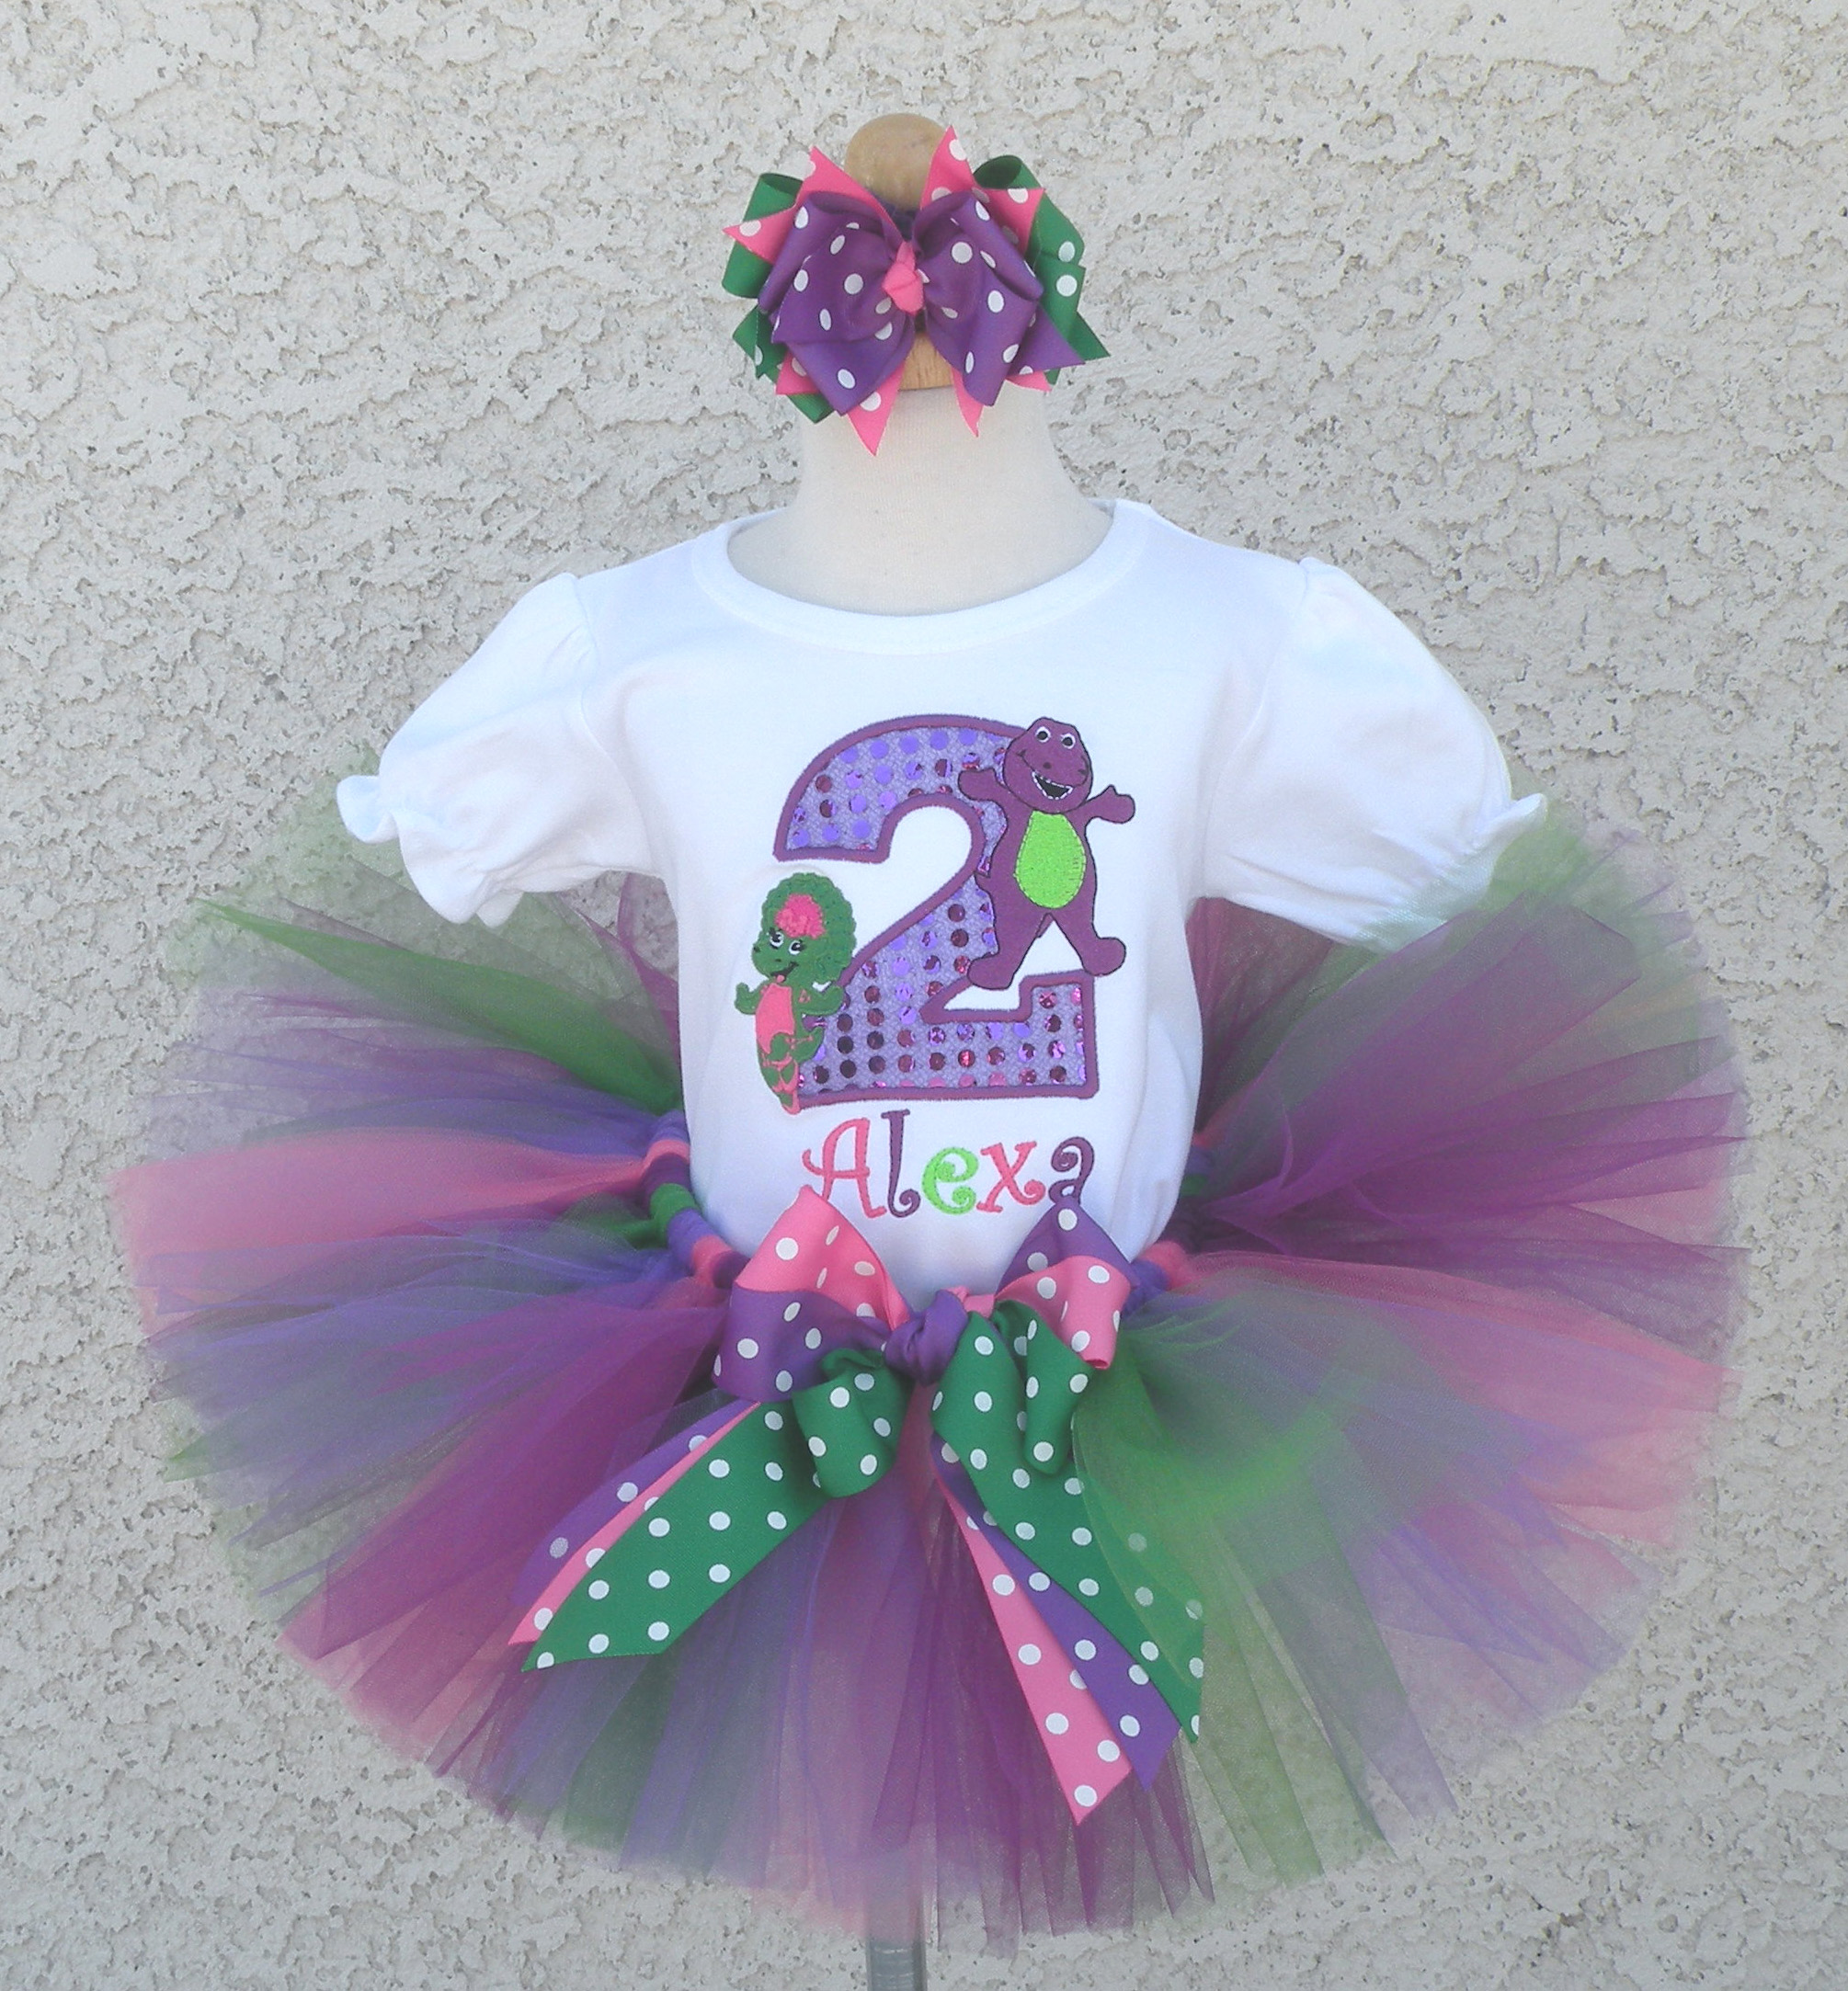 Personalized Purple, Green, Pink Barney Birthday Clothing For Girls